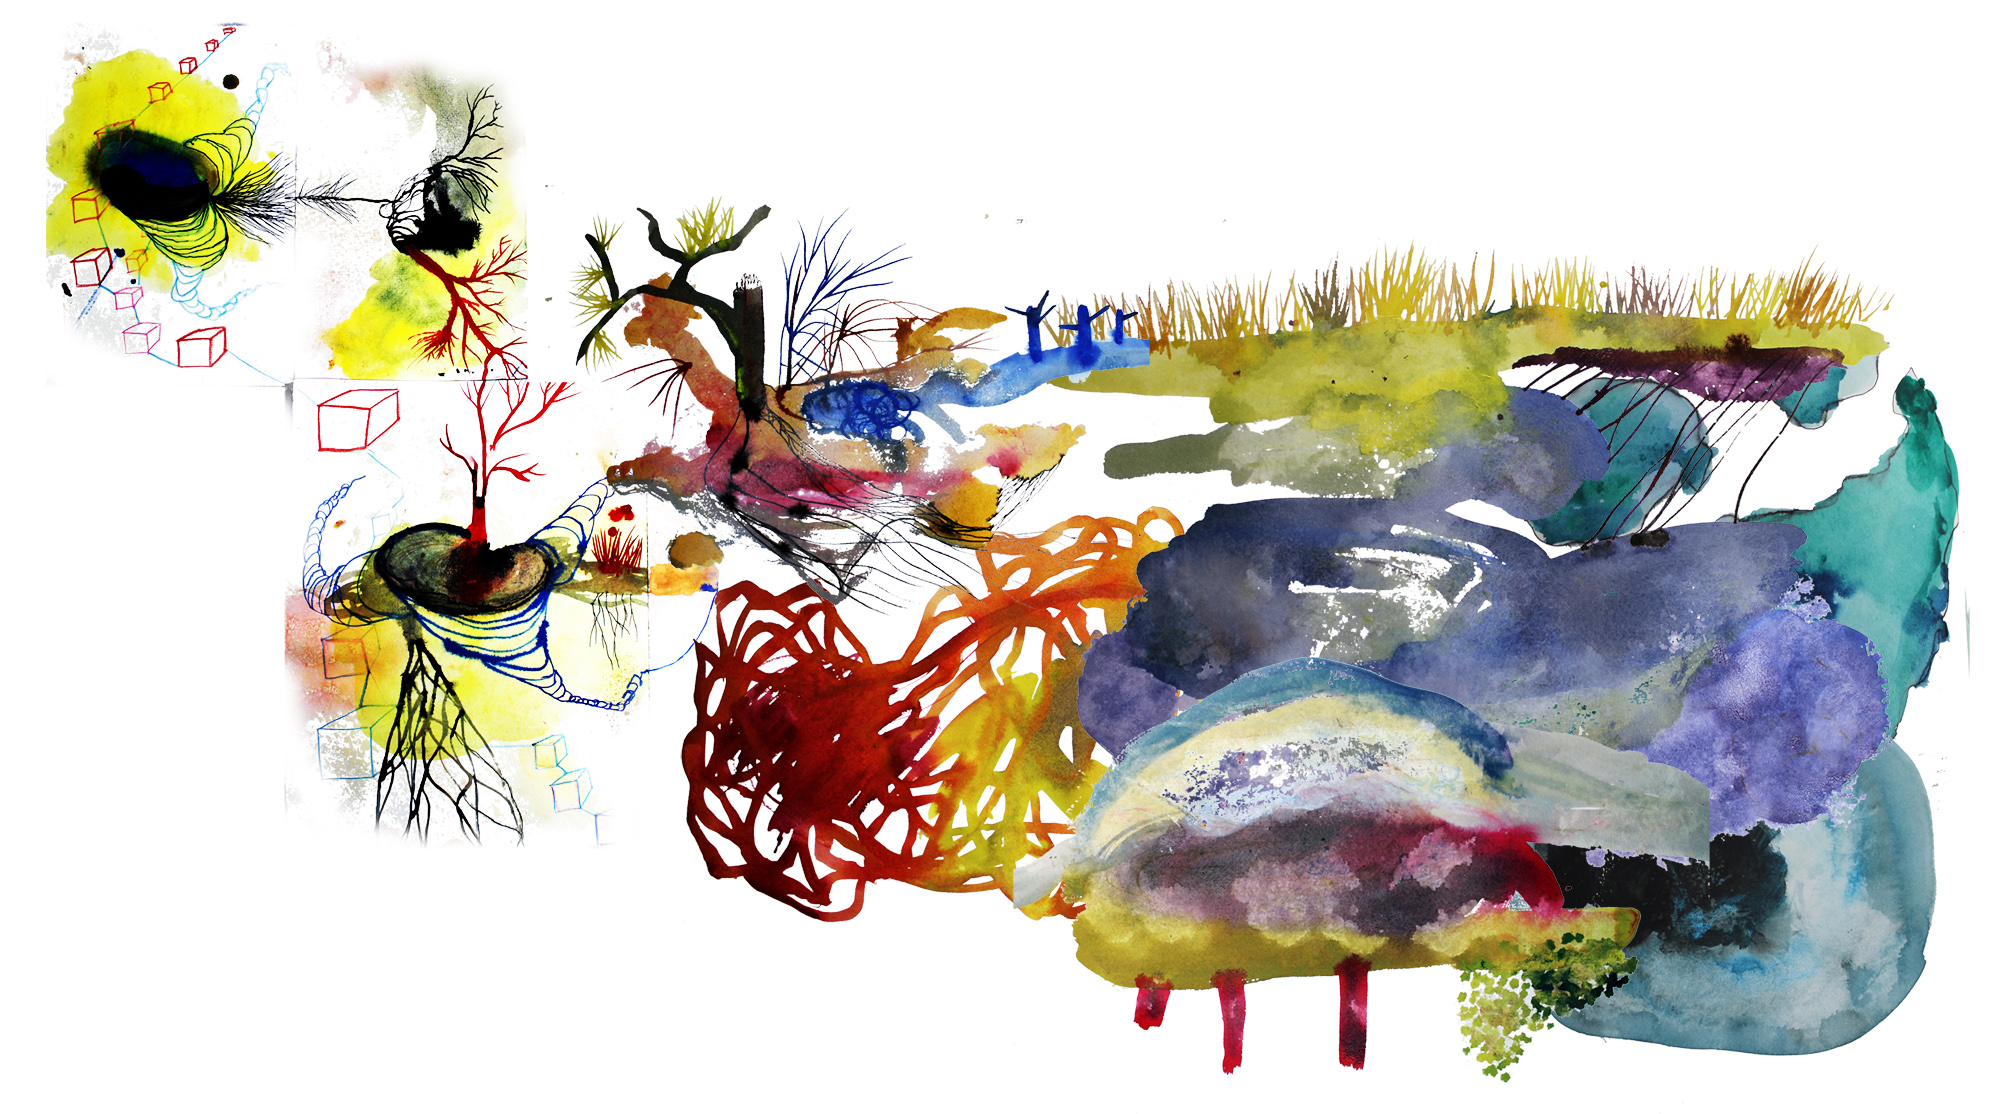 Biophilia , a Watercolor and Ink Painting by Falon Mihalic